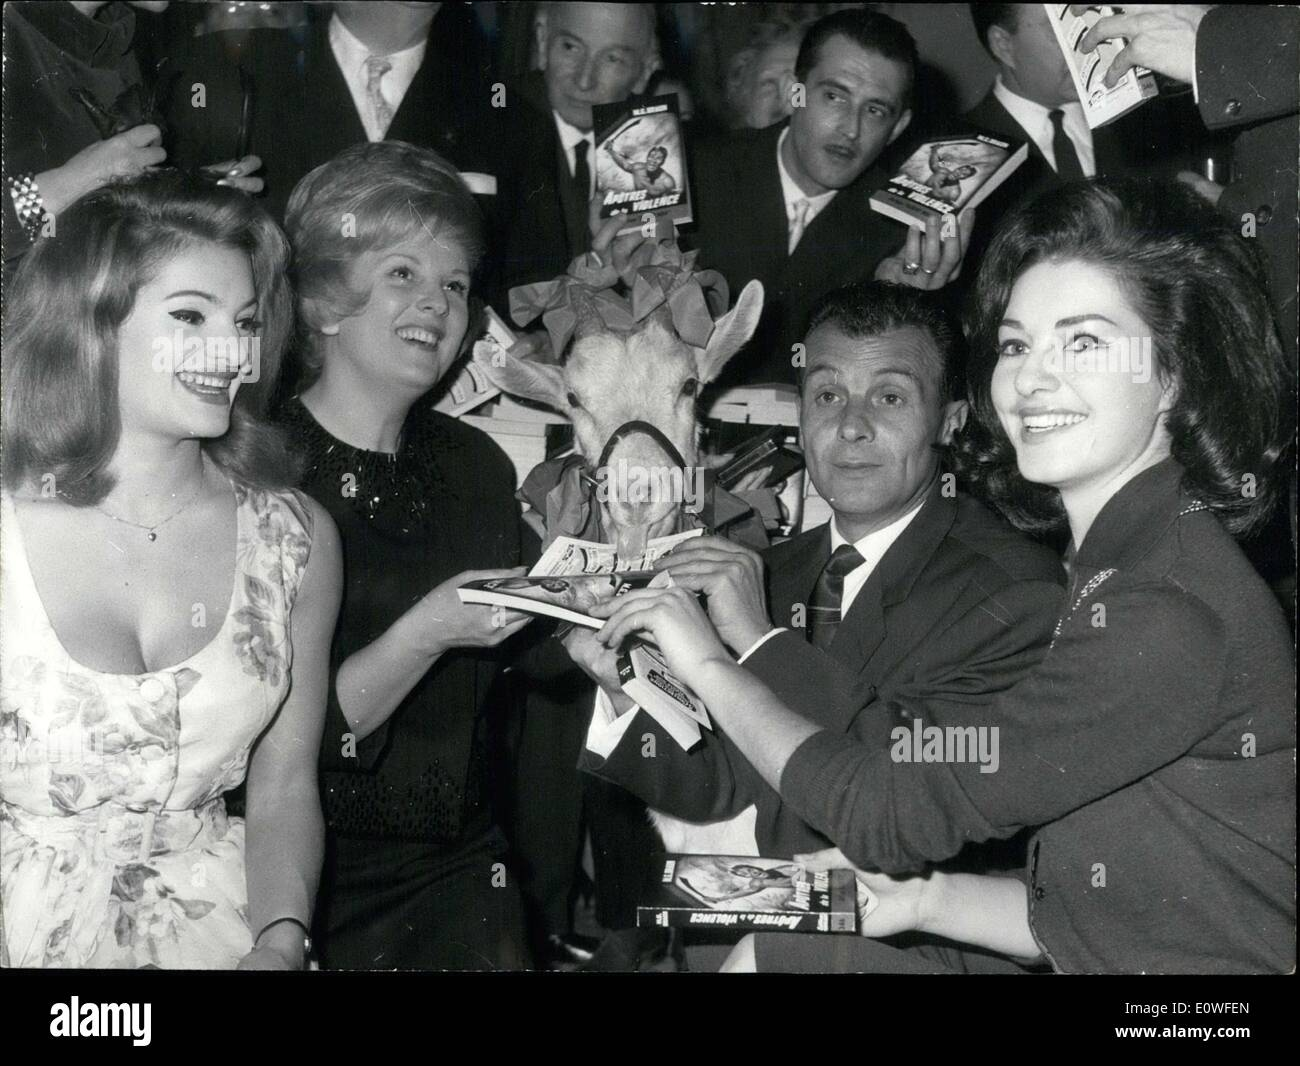 Oct. 26, 1962 - The Golden Palms of spy novels of 1962 was given to Maurice Gabriel Braun for his book ''Apostles of Violence''. He is pictured here surrounded by Sylvia Sorente, Catherine Langeais, and Monique Lemaire (Miss France 1962) - Stock Image